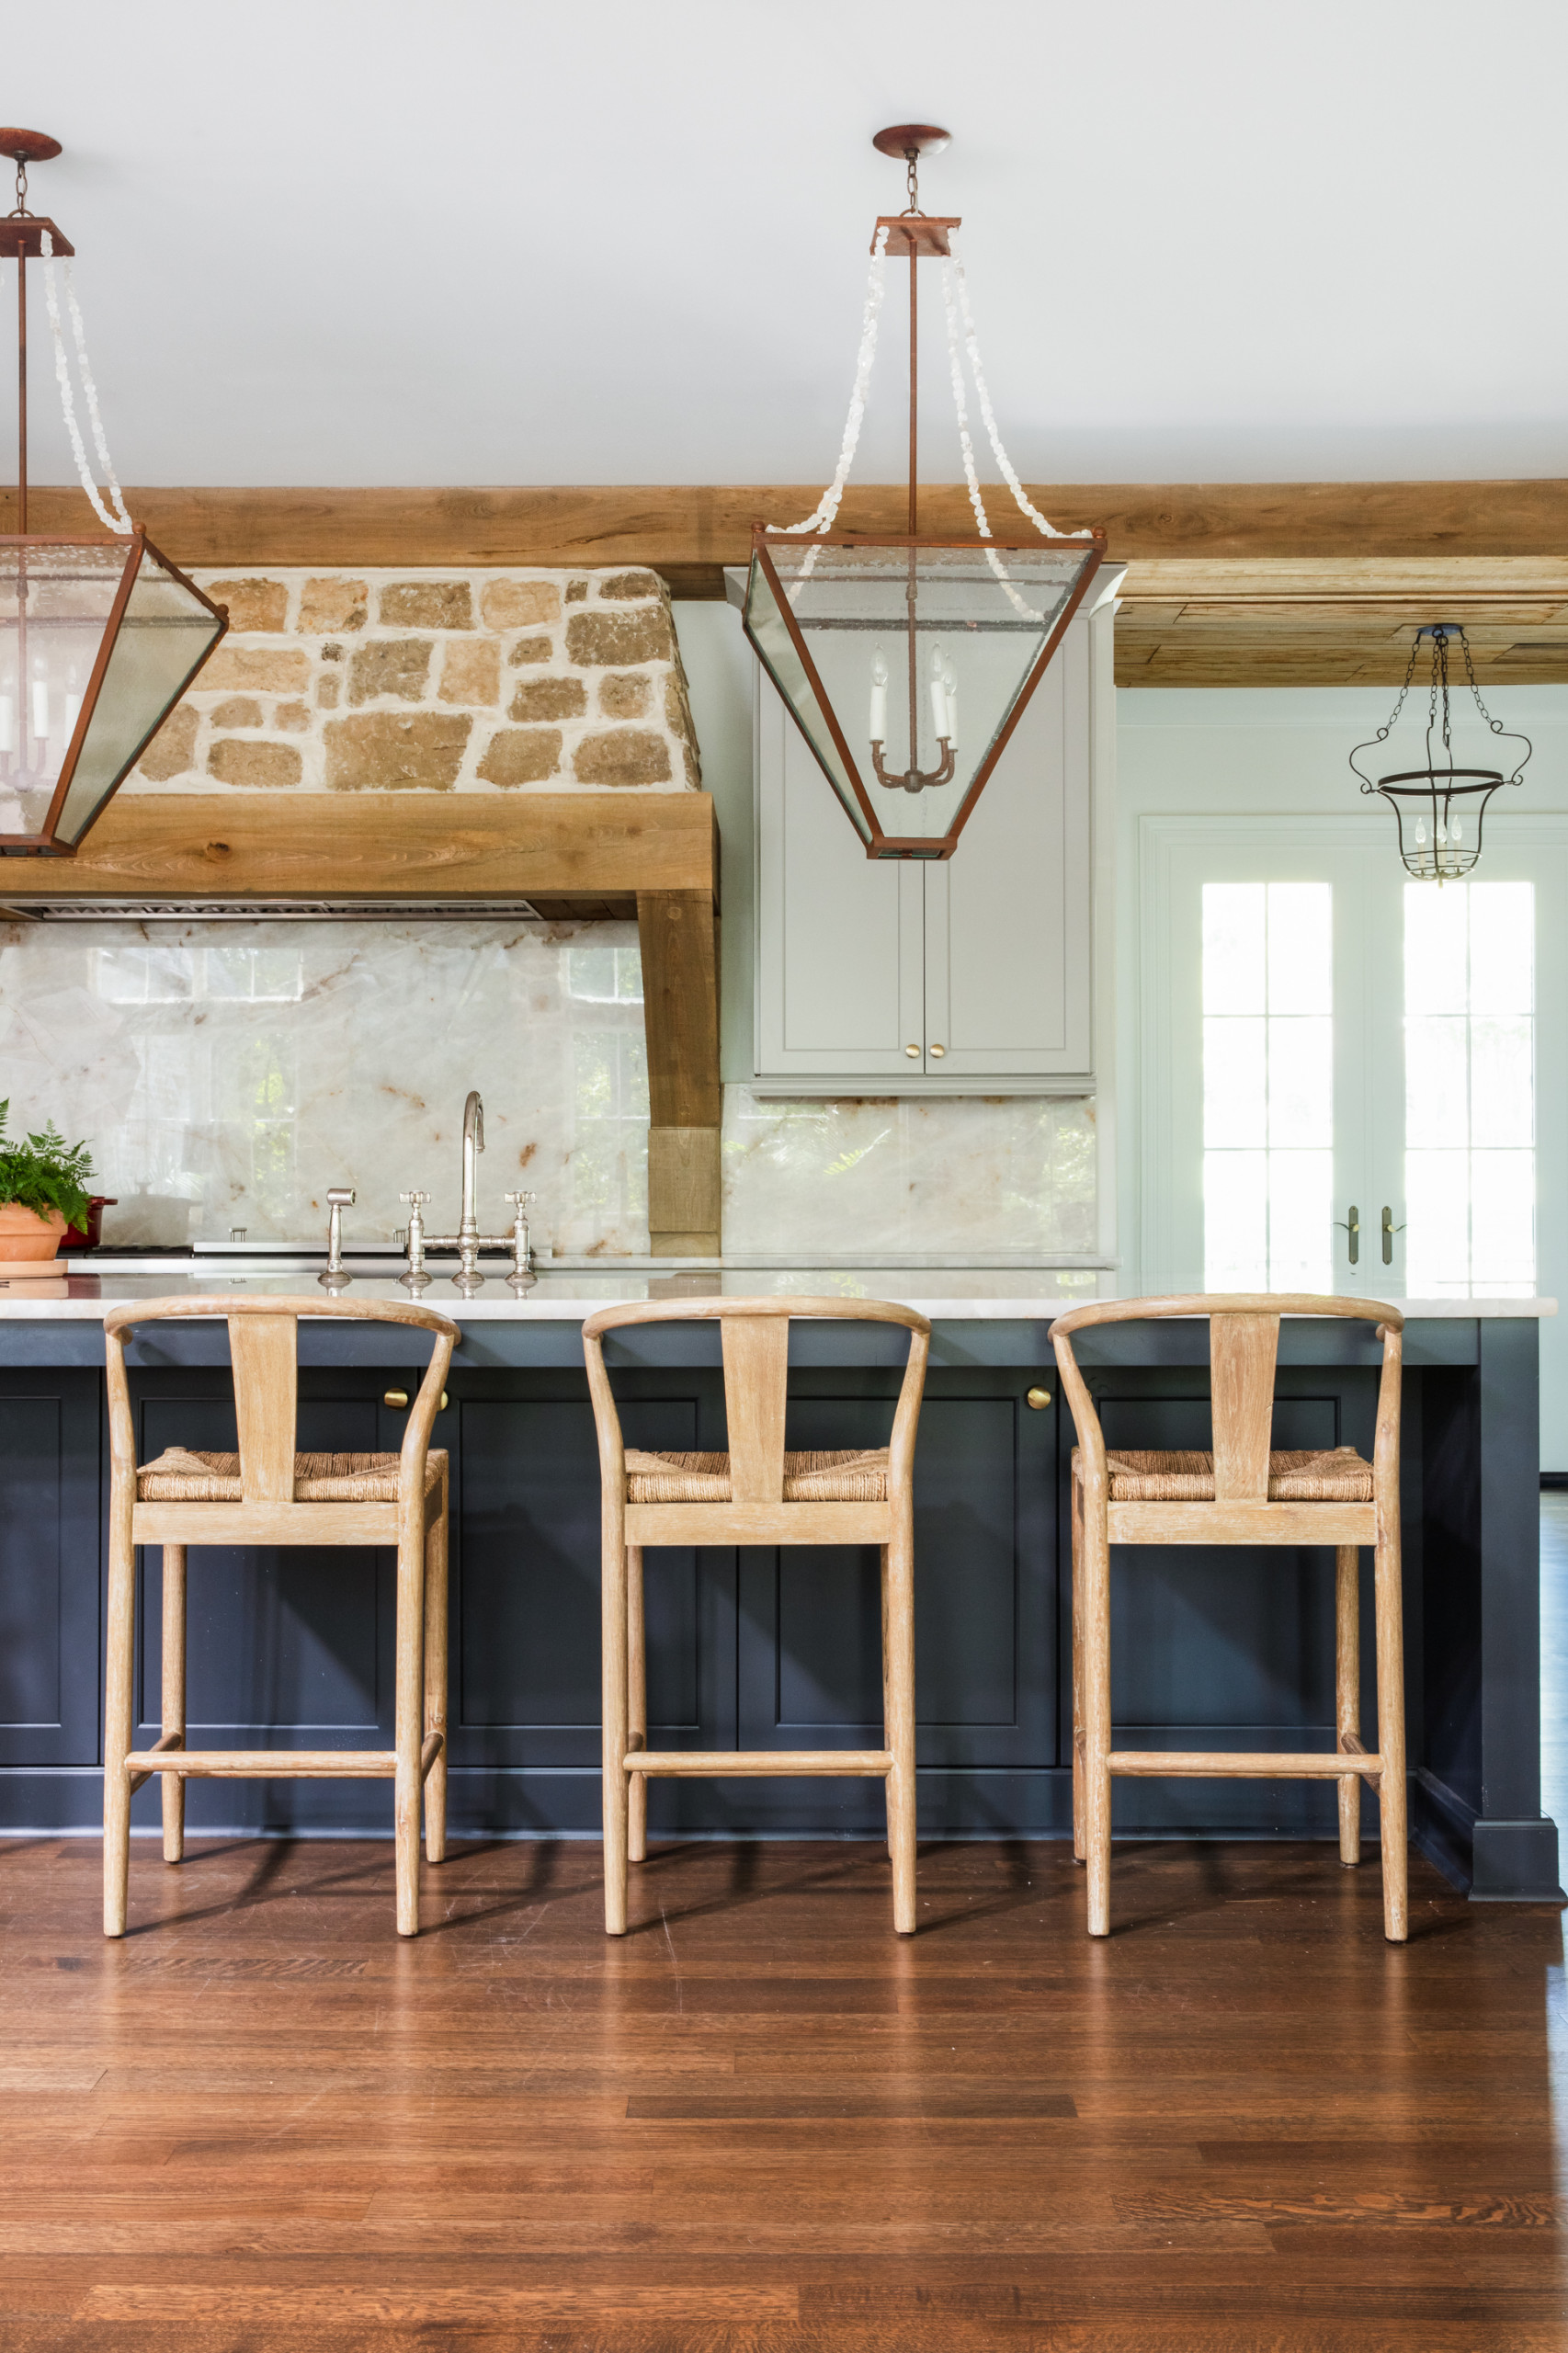 75 Beautiful Home Design Pictures Ideas January 2021 Houzz